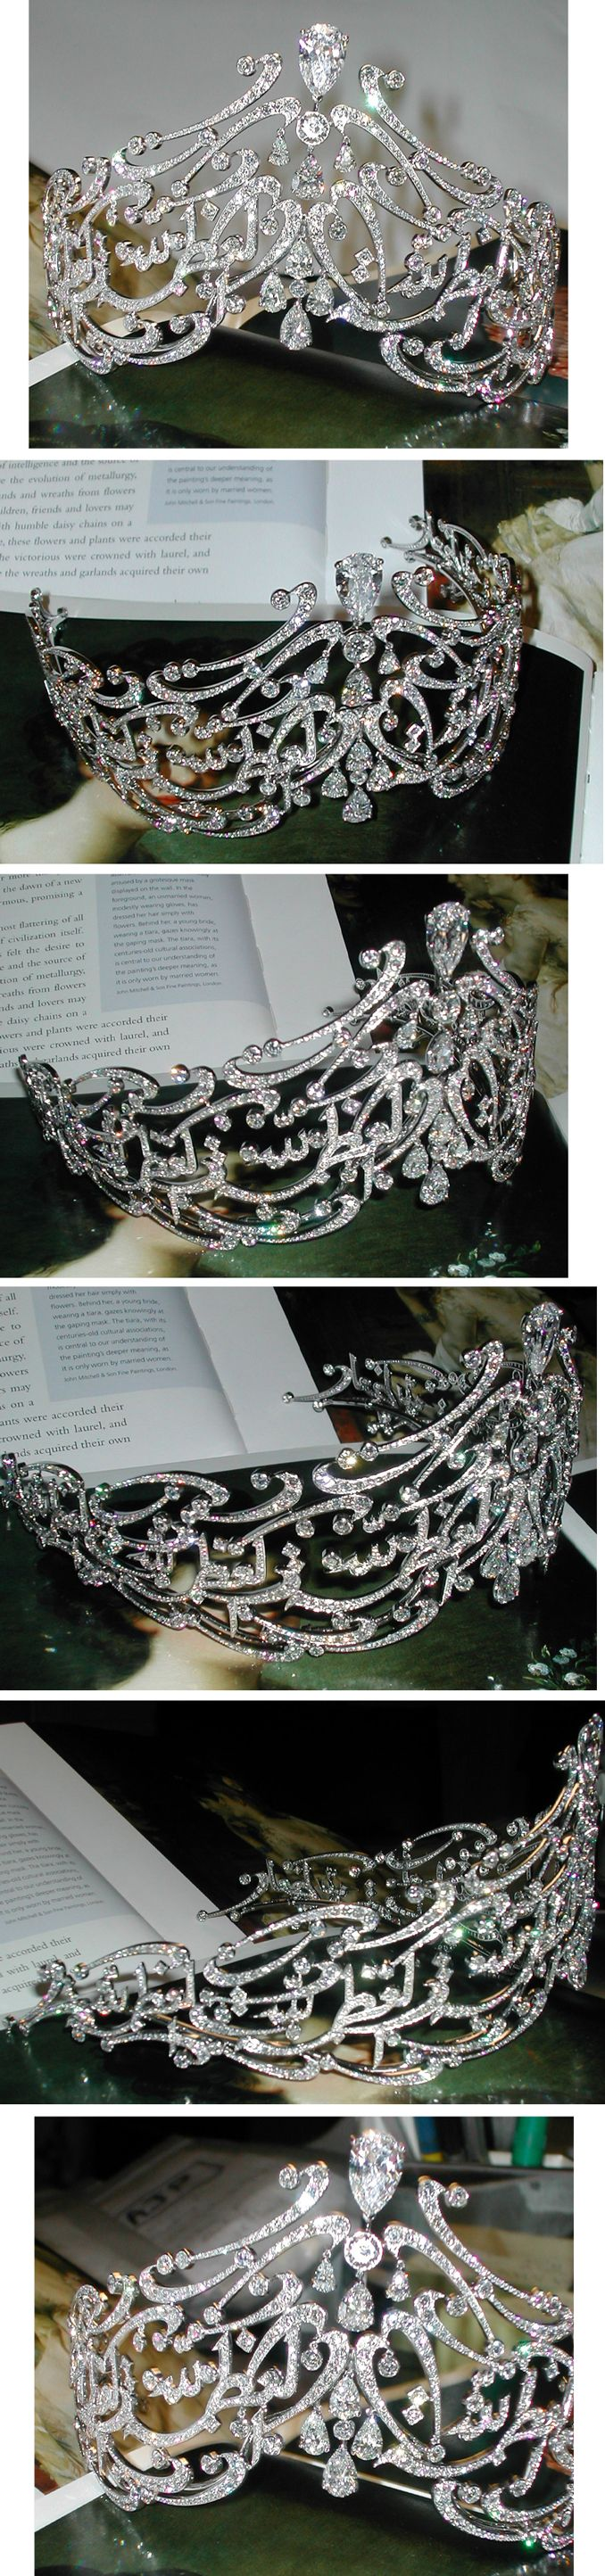 Arabic Scroll tiara~ belonging to Queen Rania of JORDAN.